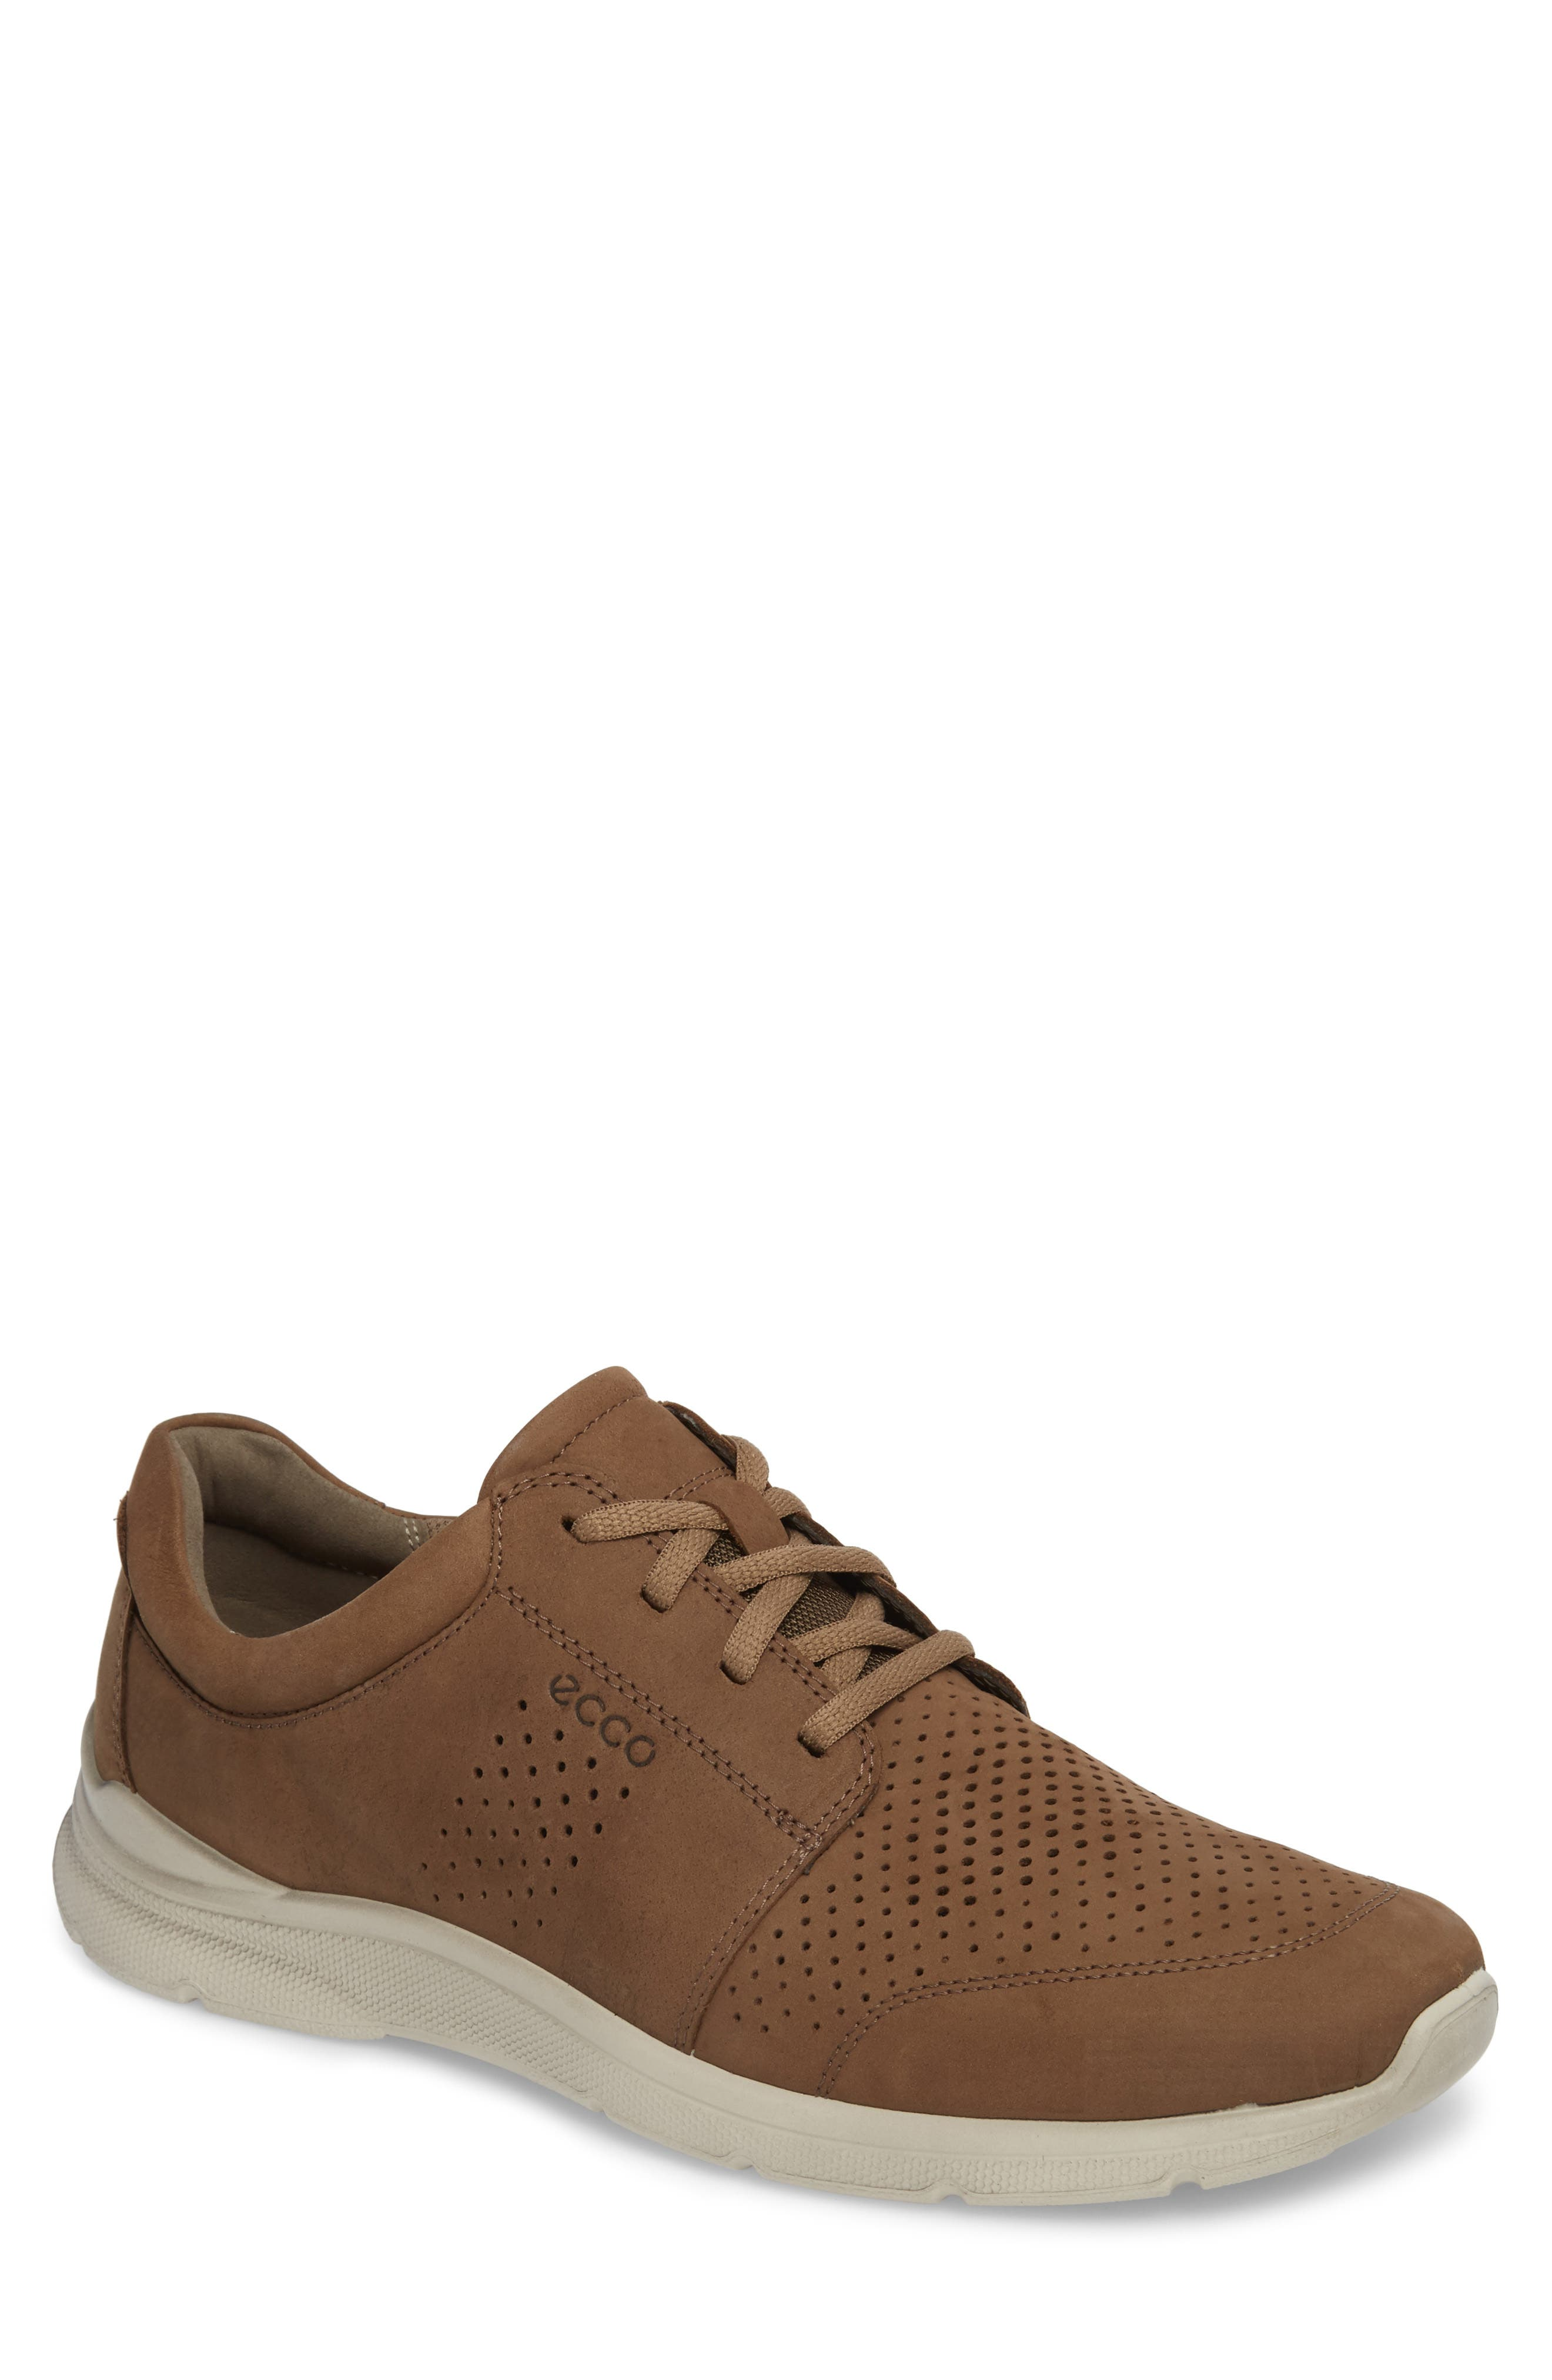 Irving Lace-Up Sneaker,                         Main,                         color, Birch Leather